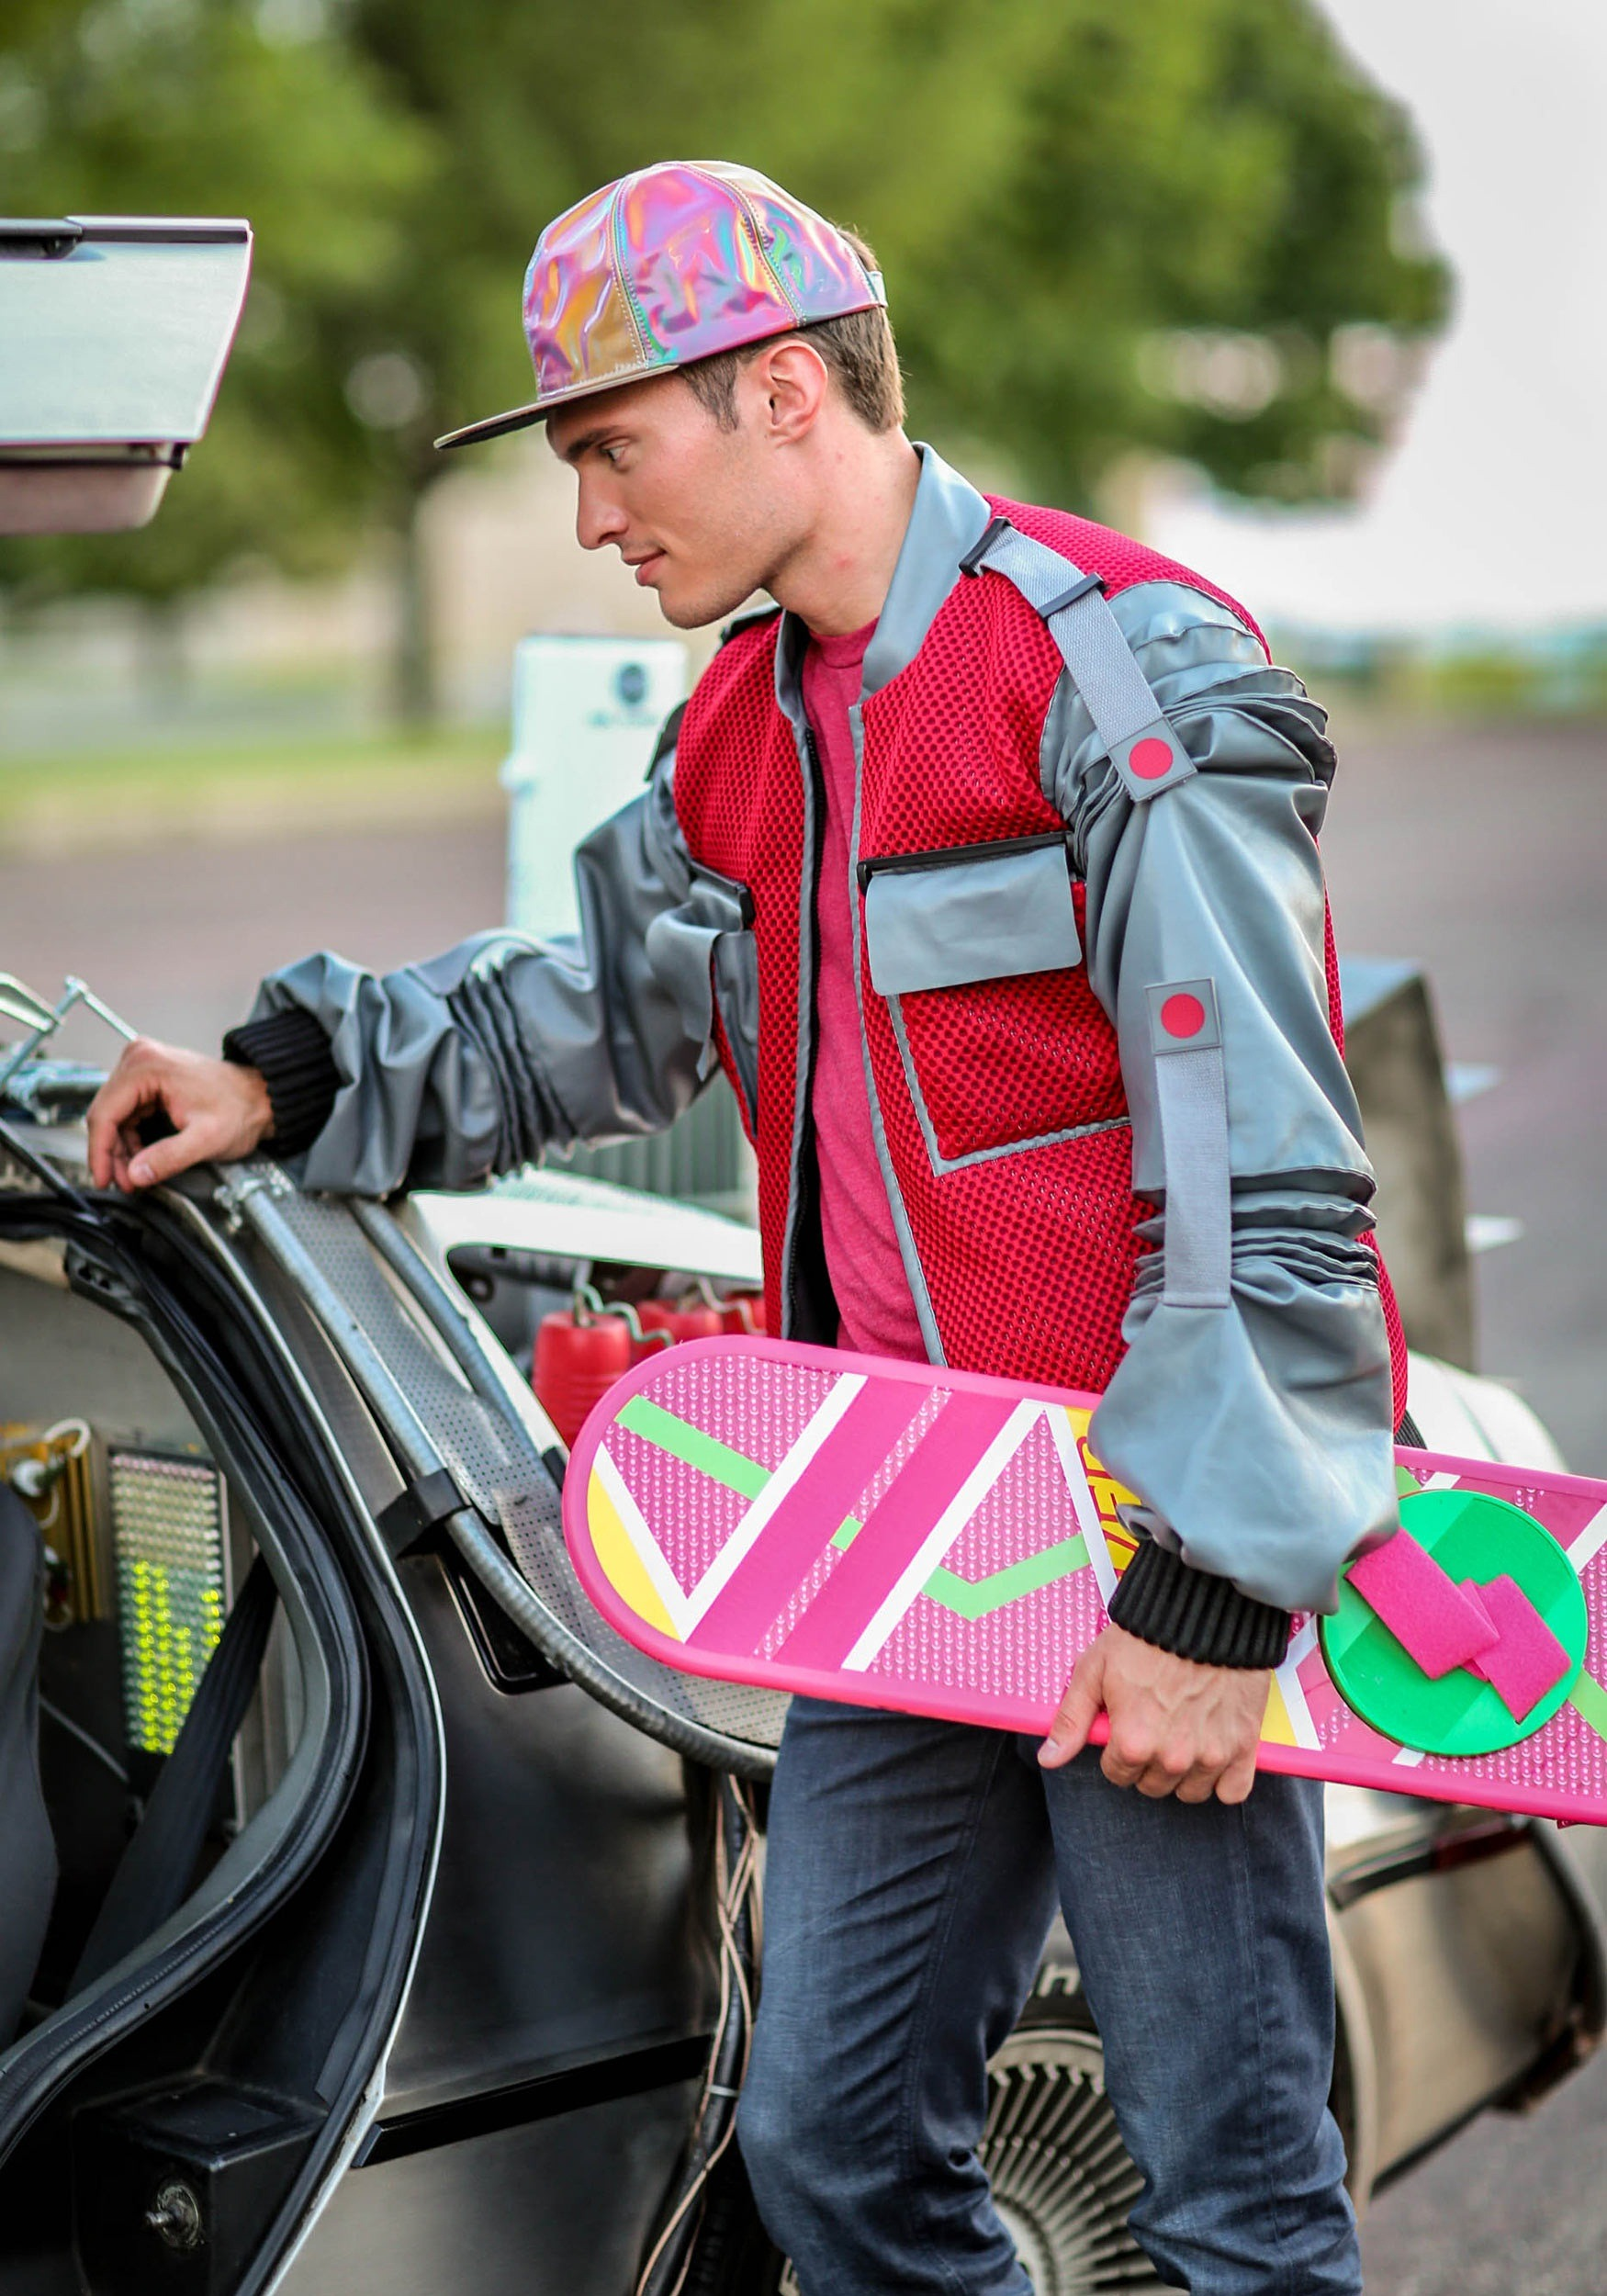 men 39 s authentic marty mcfly jacket costume from back to the future part 2. Black Bedroom Furniture Sets. Home Design Ideas